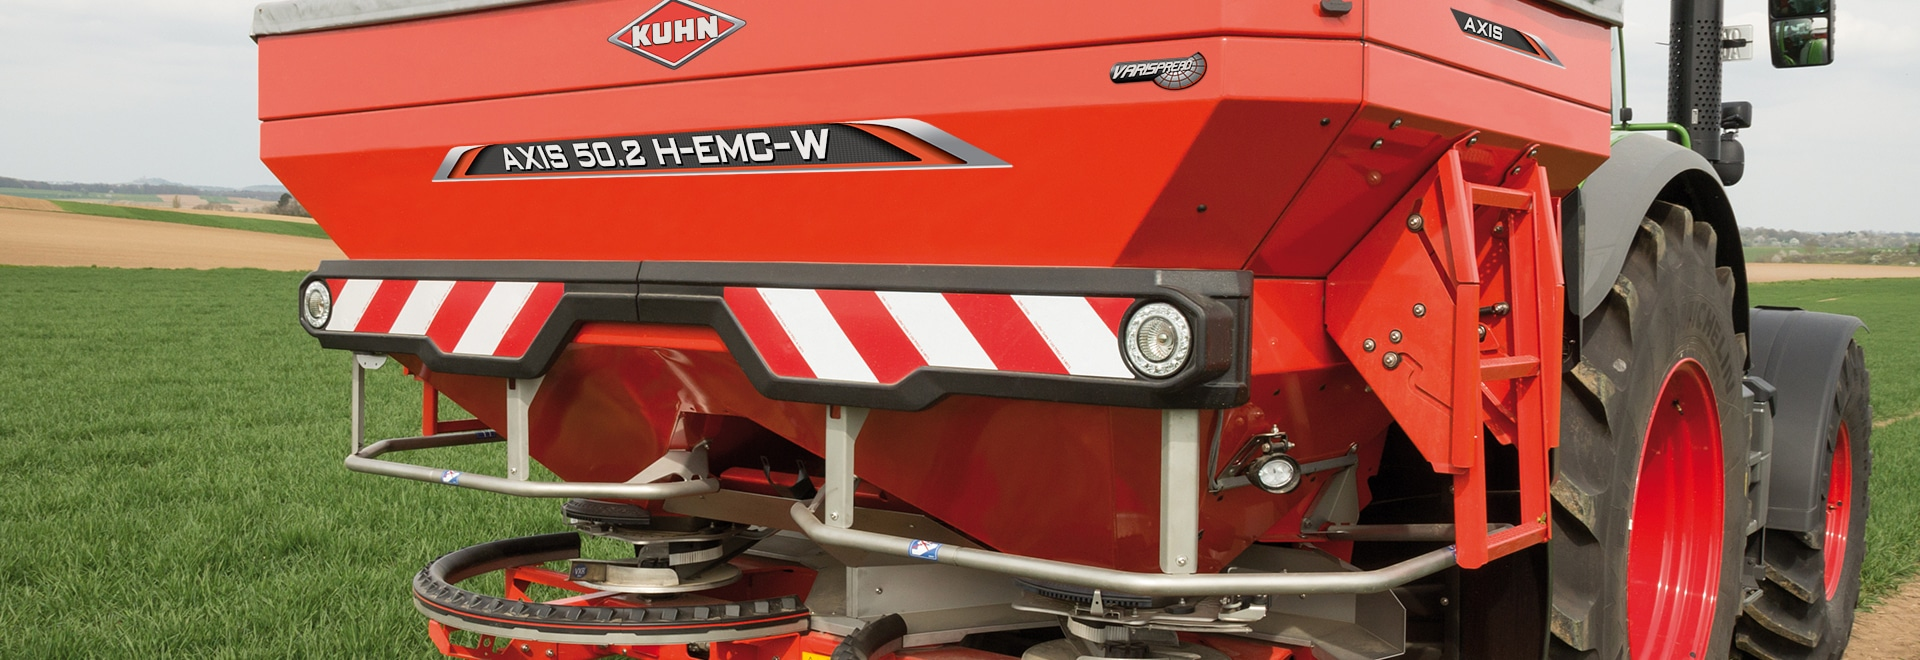 Kuhn launches radar-based automatic spreader control